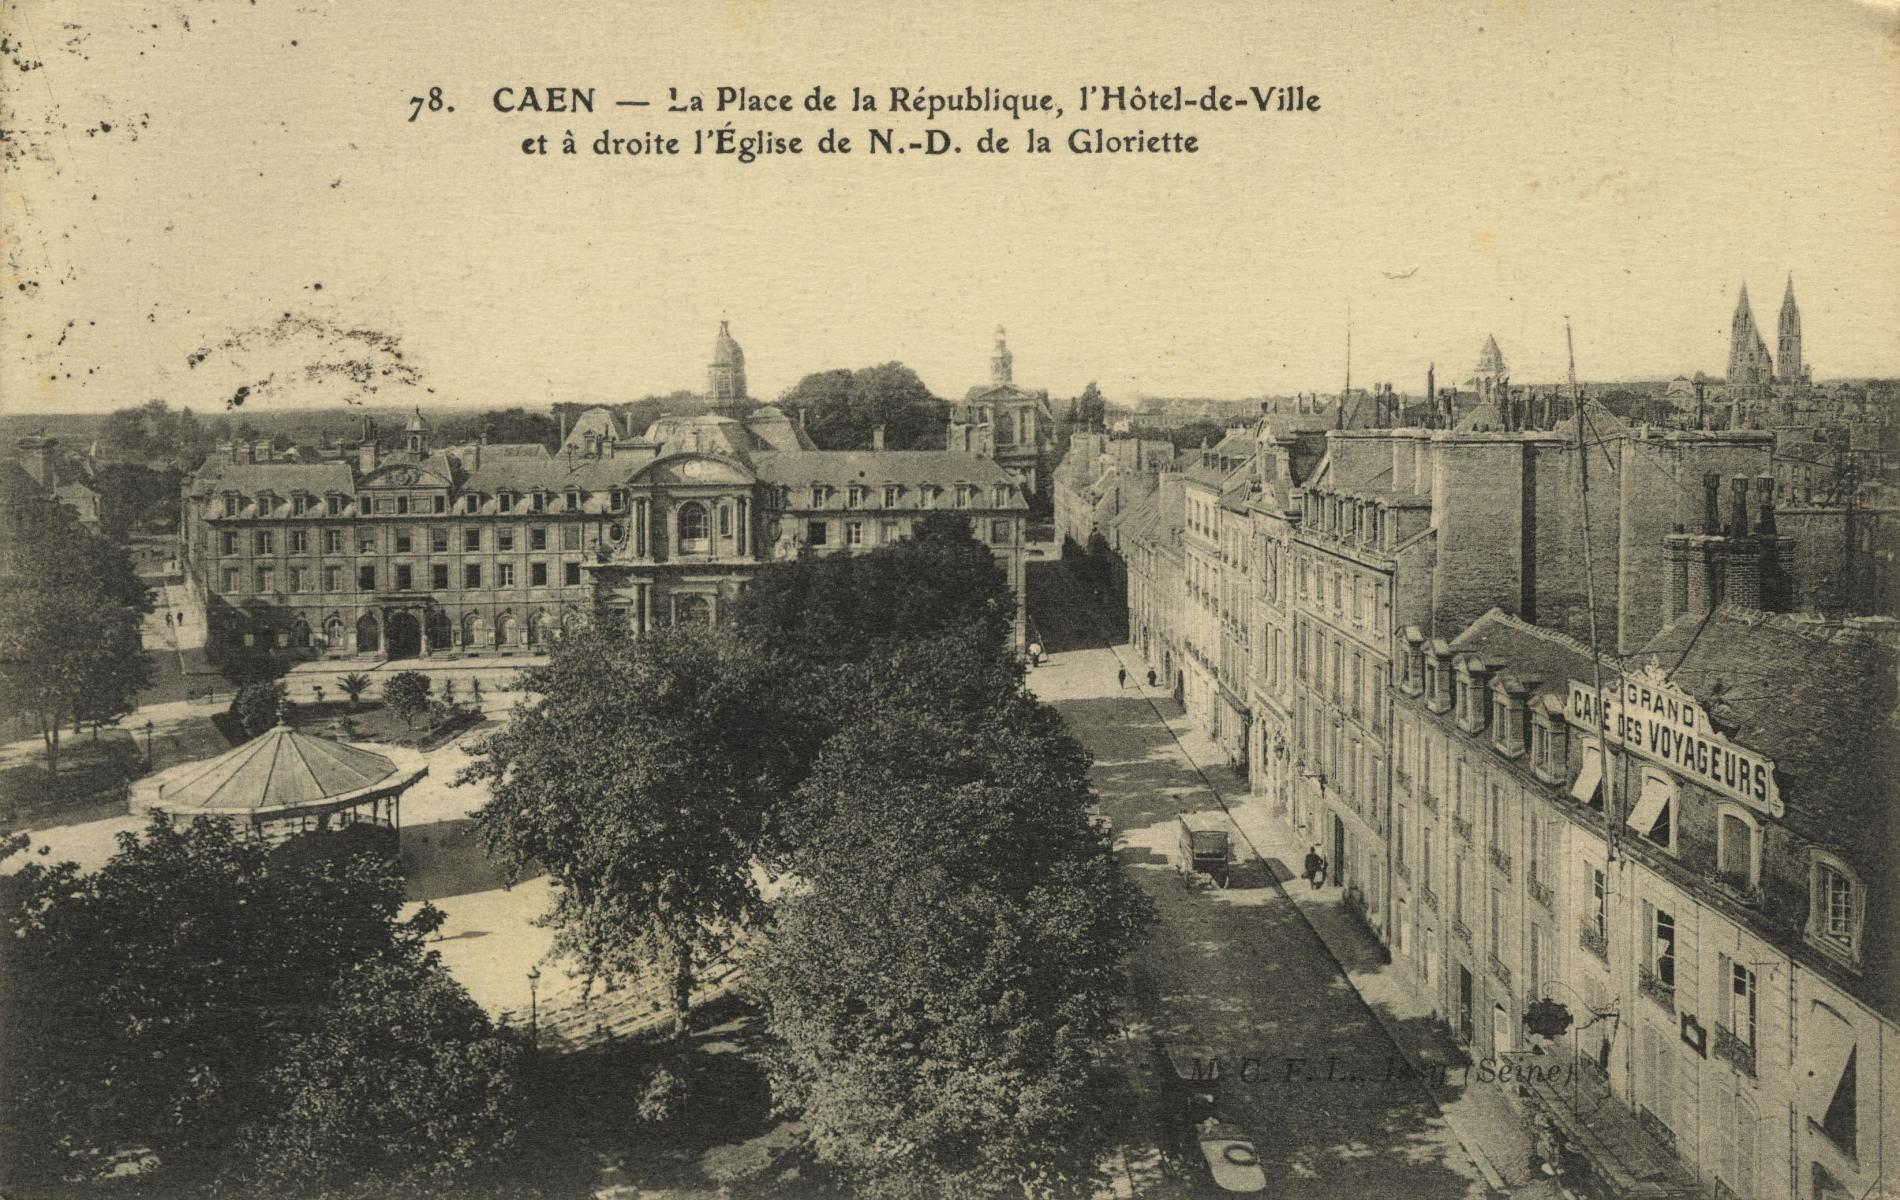 THE REPUBLIQUE SQUARE